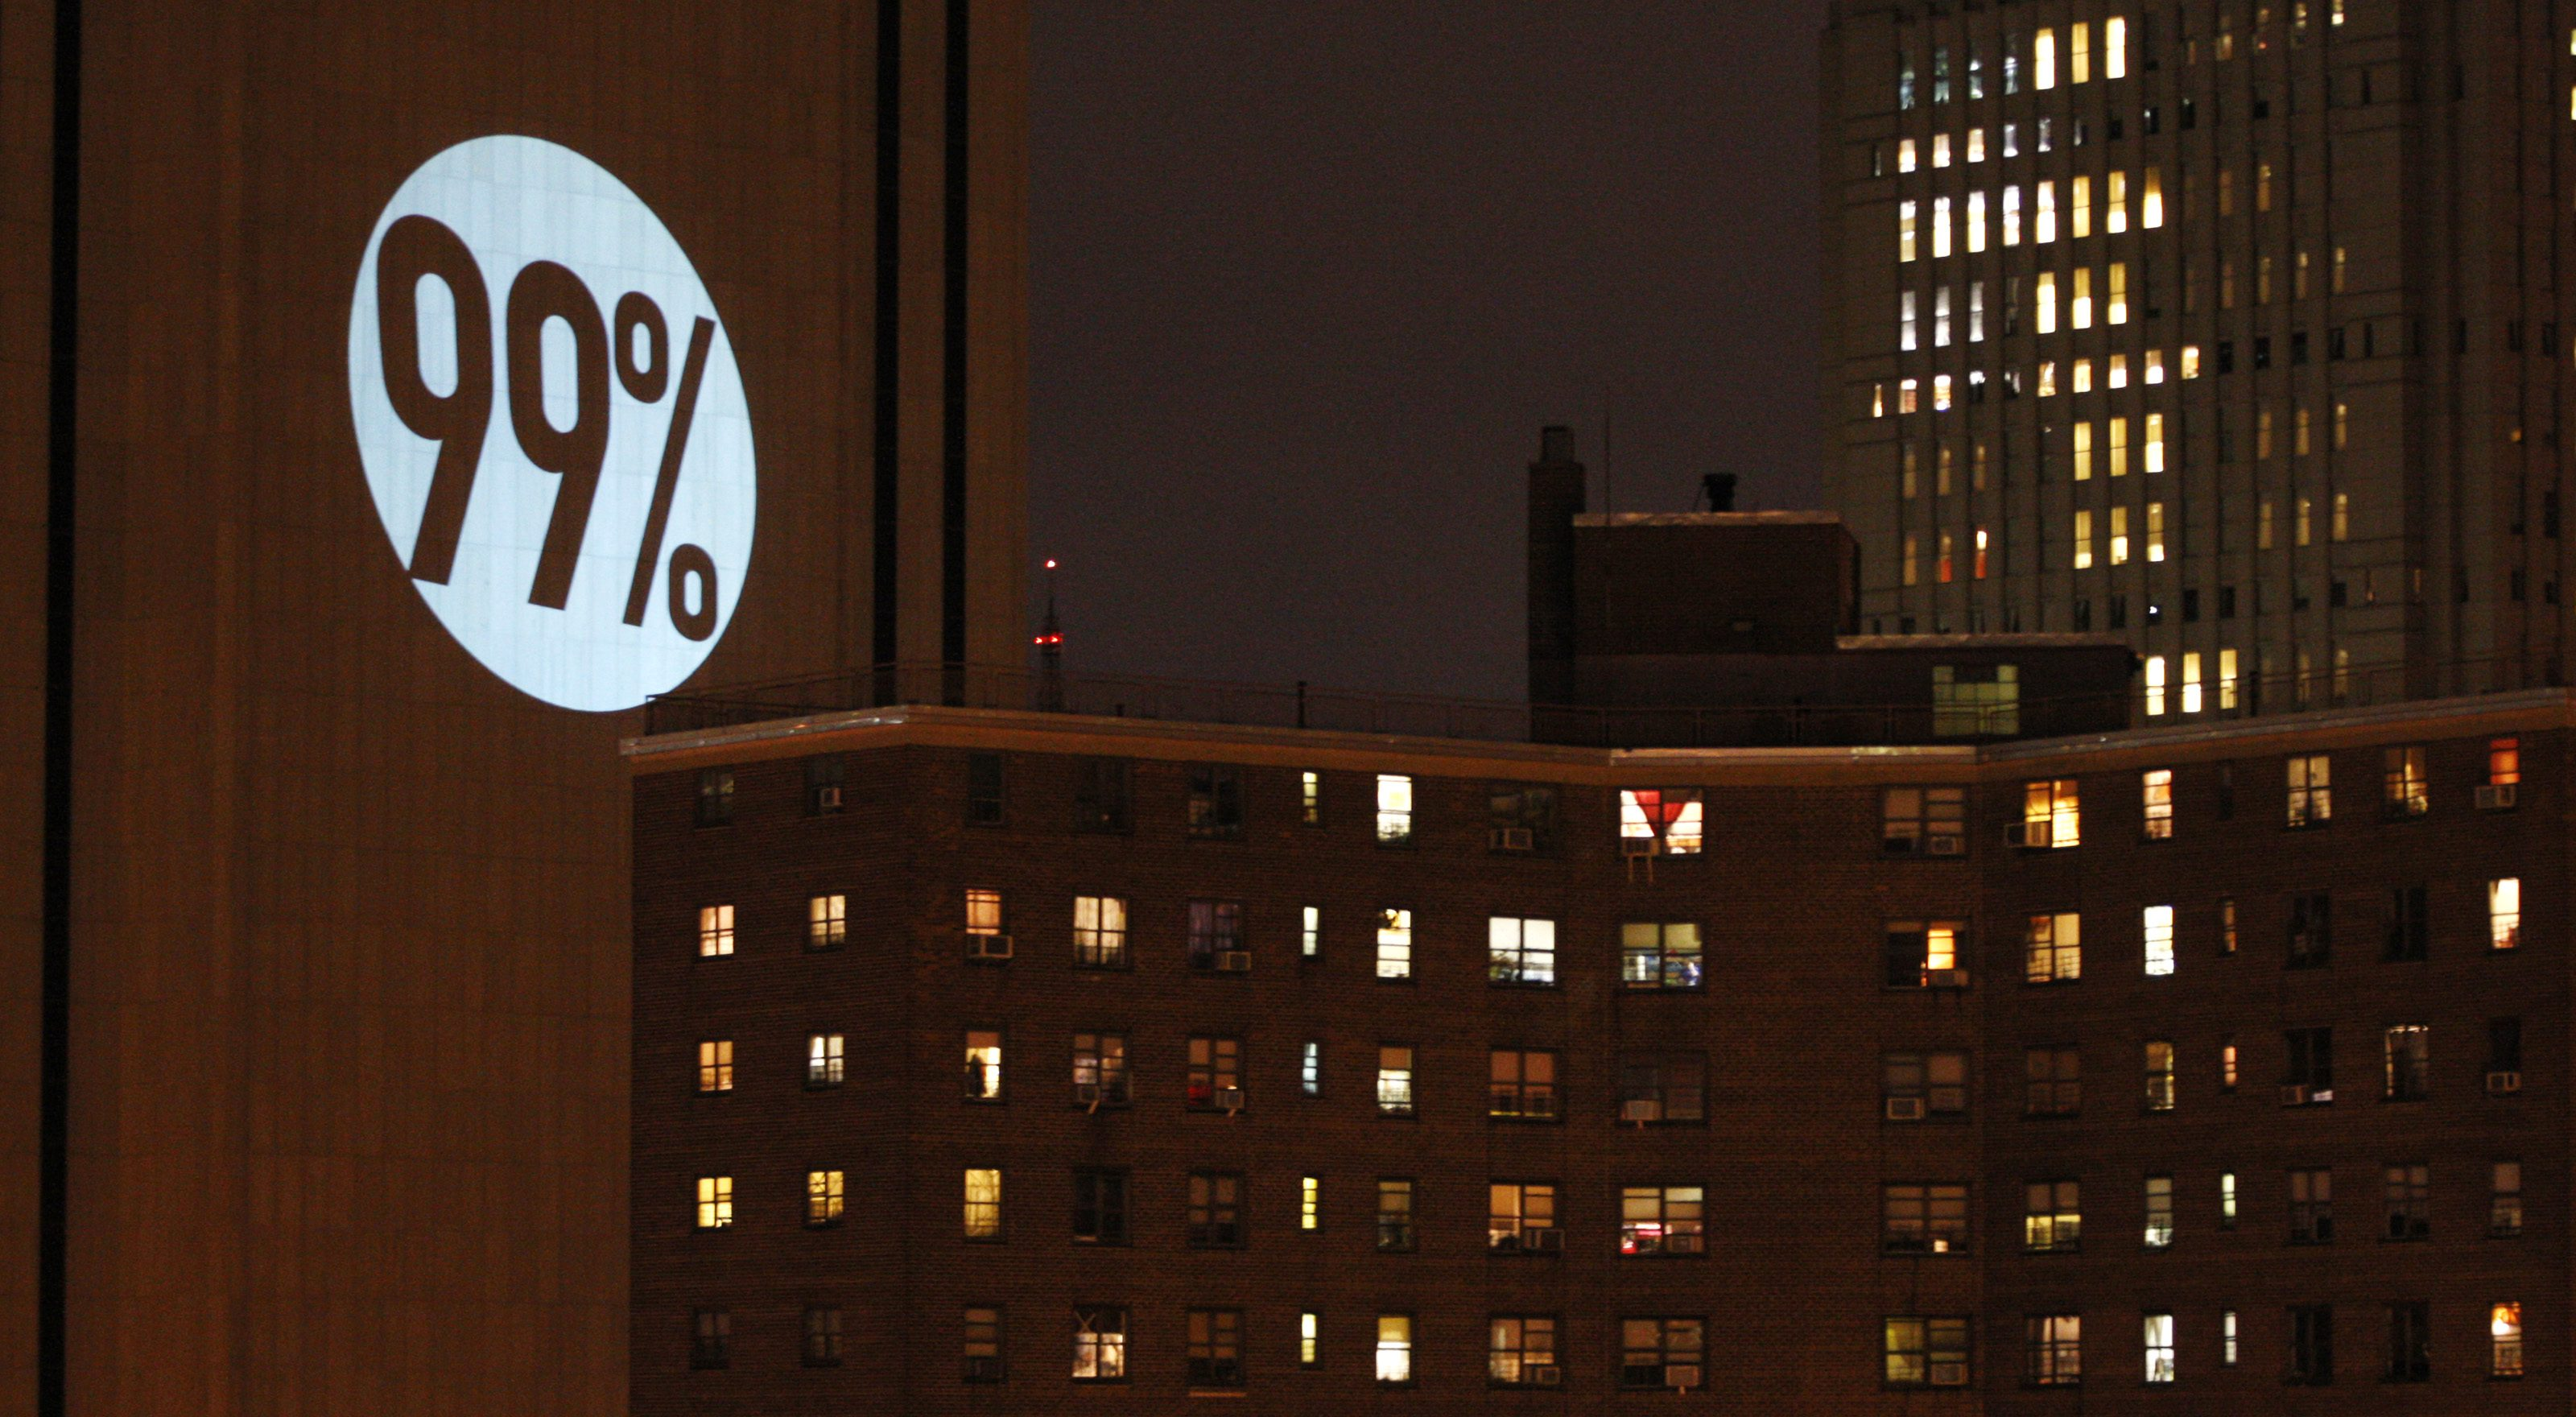 A sign is projected on the Verizon Building by Occupy Wall Street demonstrators in New York